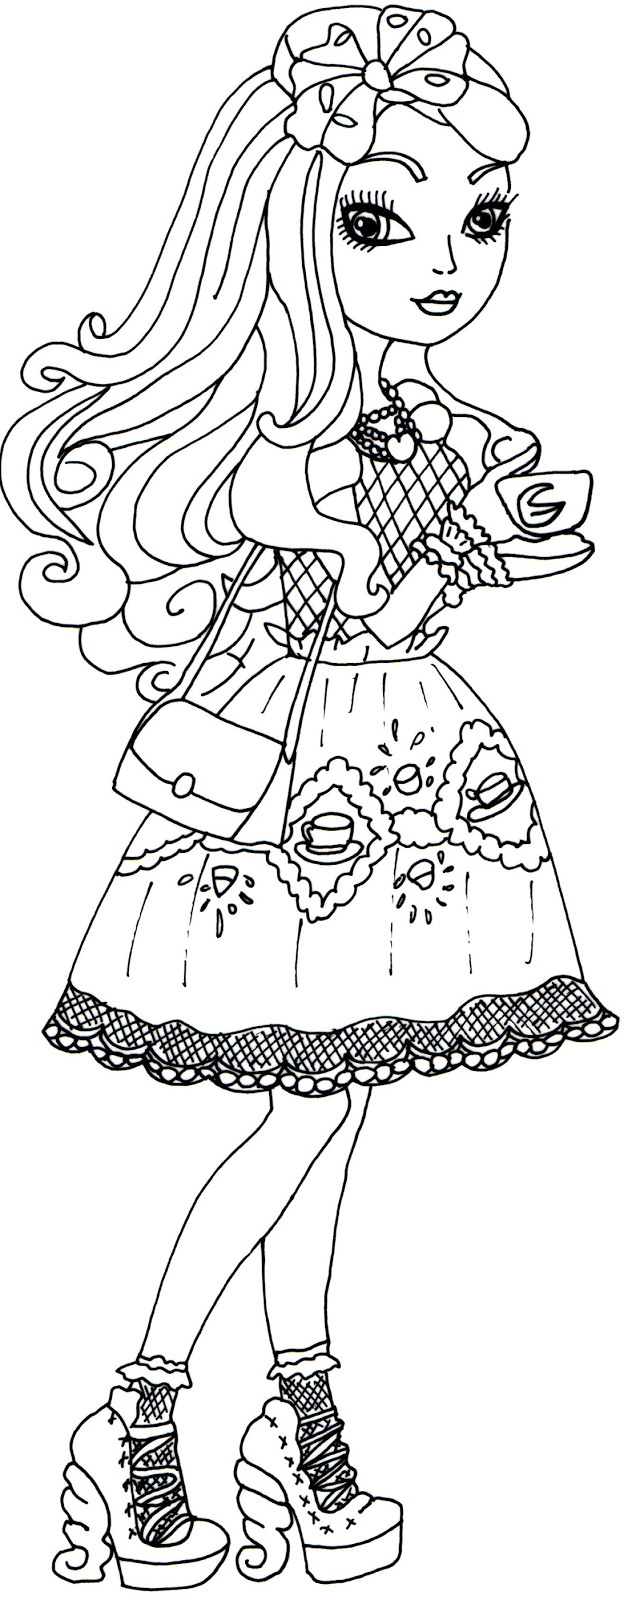 Free Printable Ever After High Coloring Pages: Apple White | Pages ...